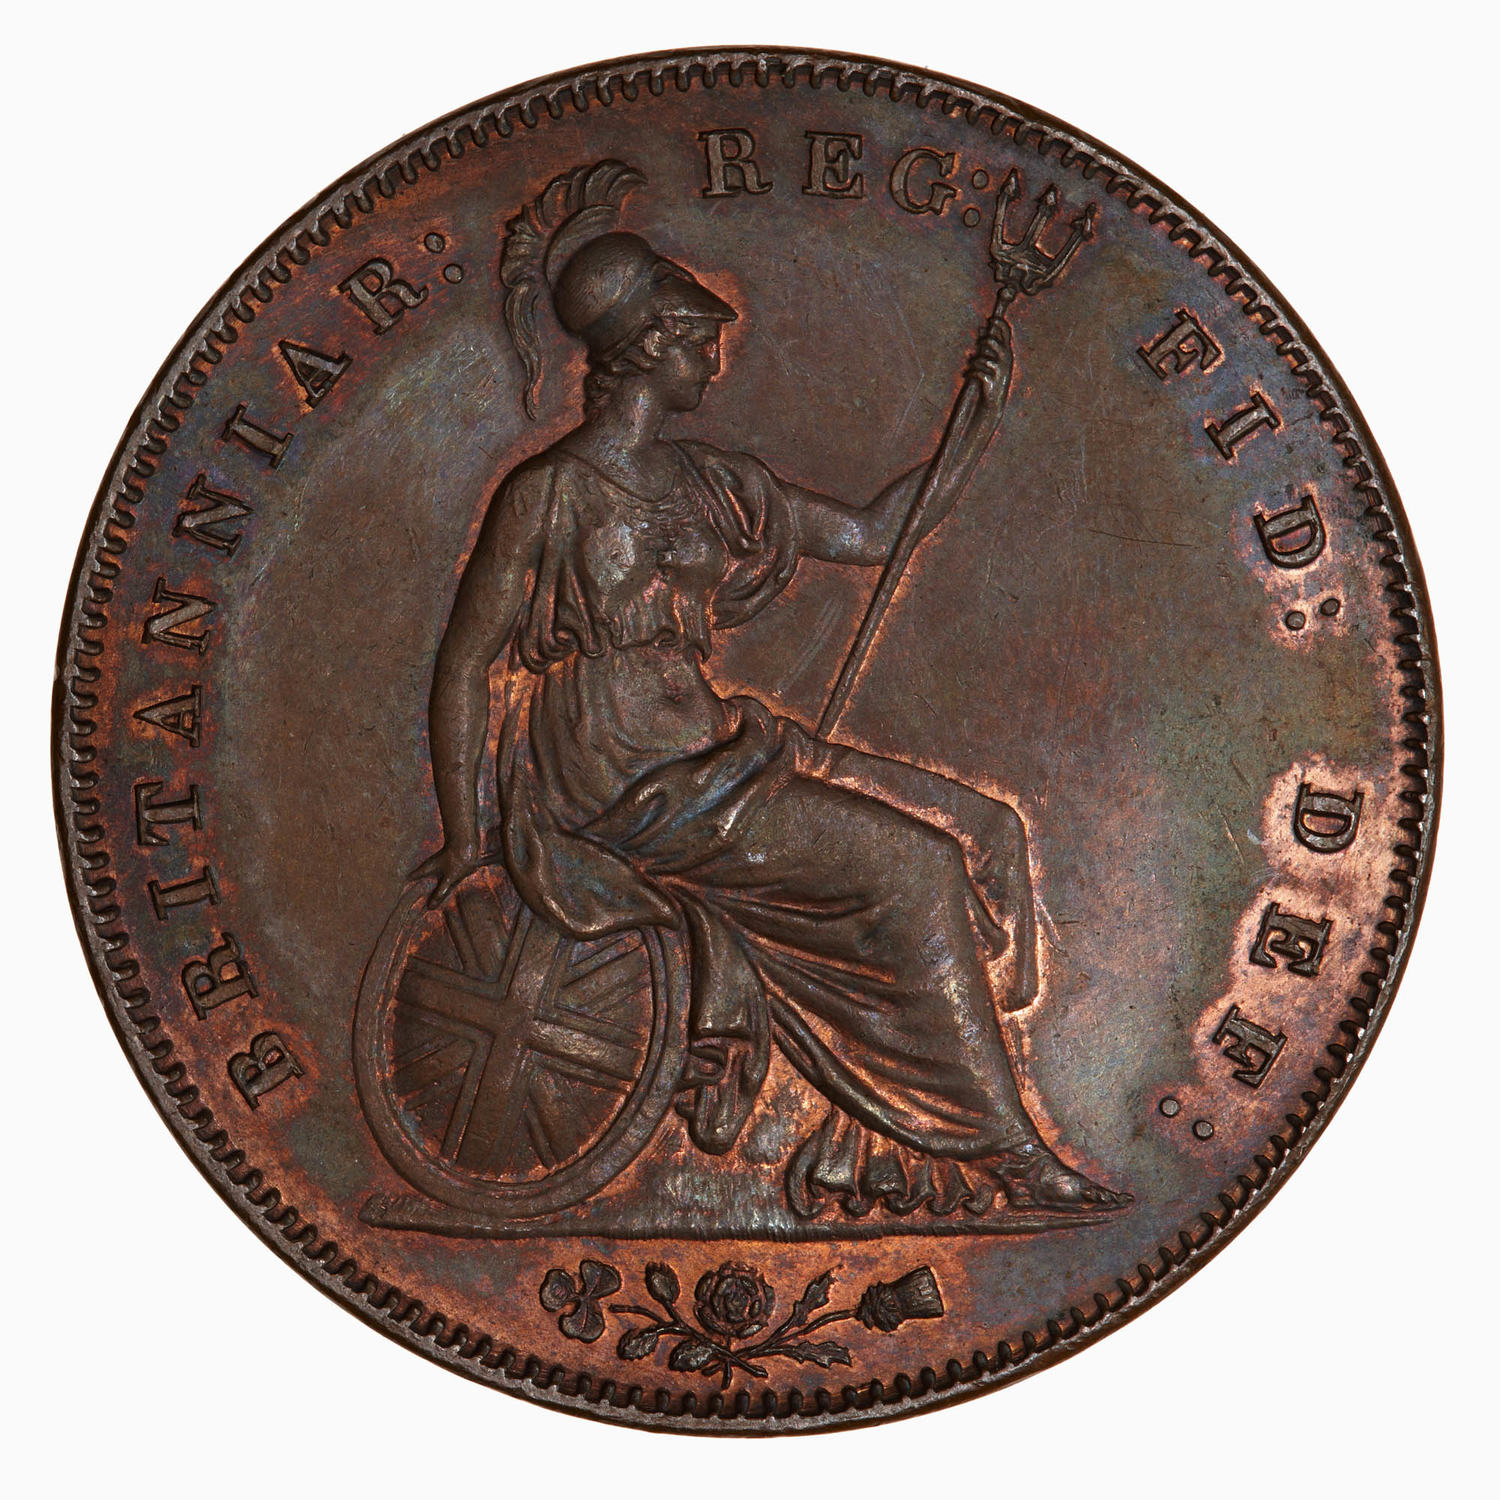 Penny 1860 (Large): Photo Coin - Penny, Queen Victoria, Great Britain, 1860